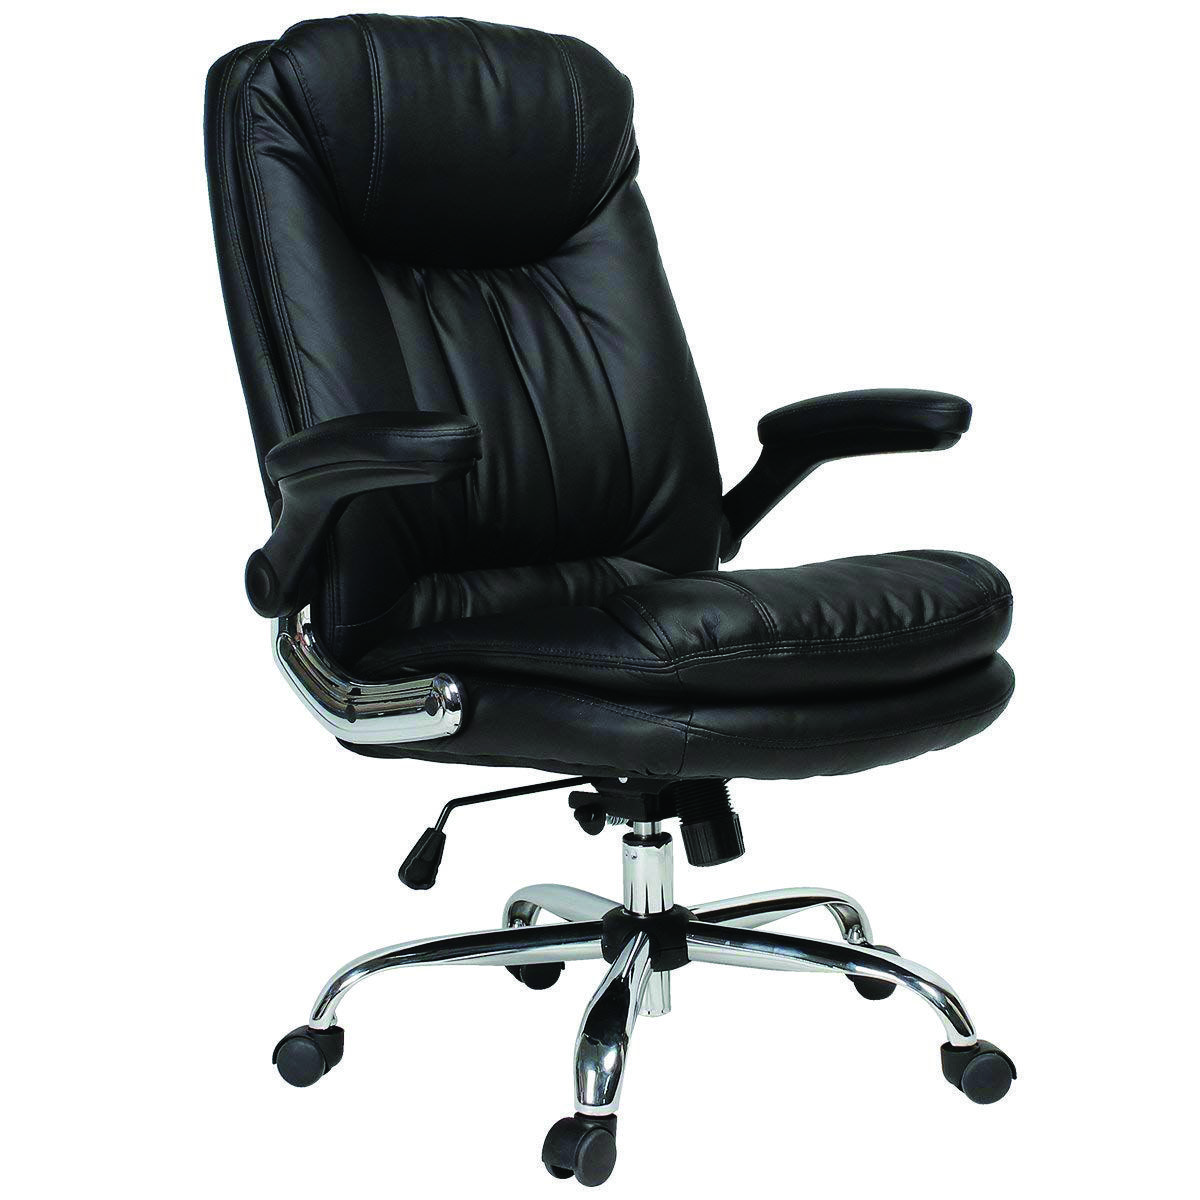 Surprising Best Office Chair 2018 Reddit Just On Shopy Home Design Best Office Chair Office Chair Leather Chair